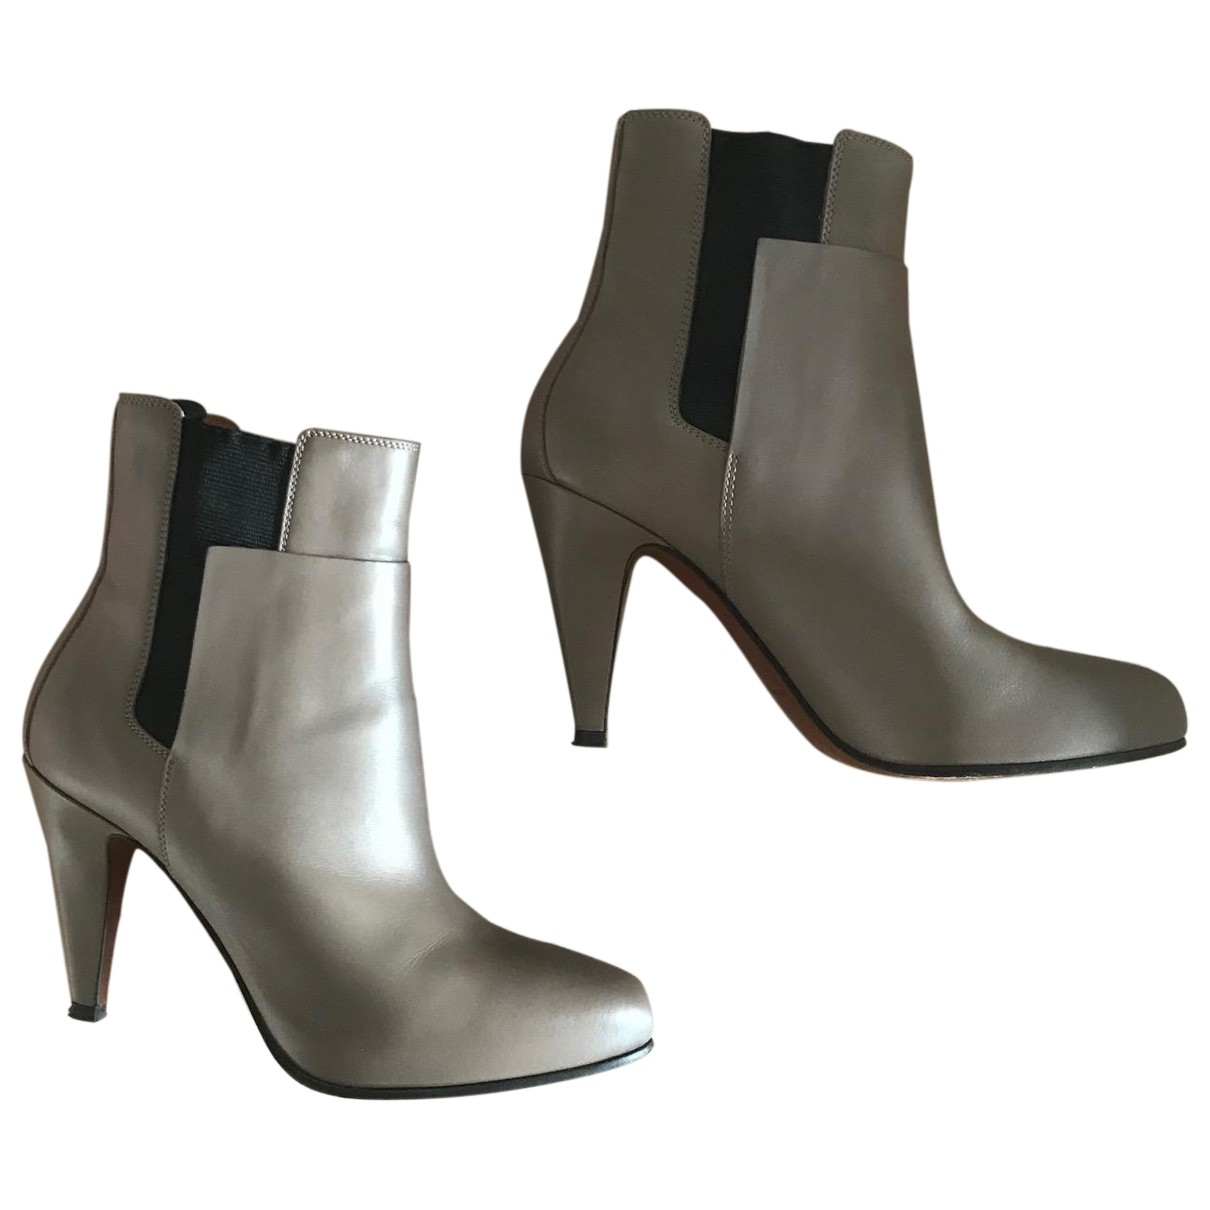 Balenciaga \N Beige Leather Ankle boots for Women 37.5 EU